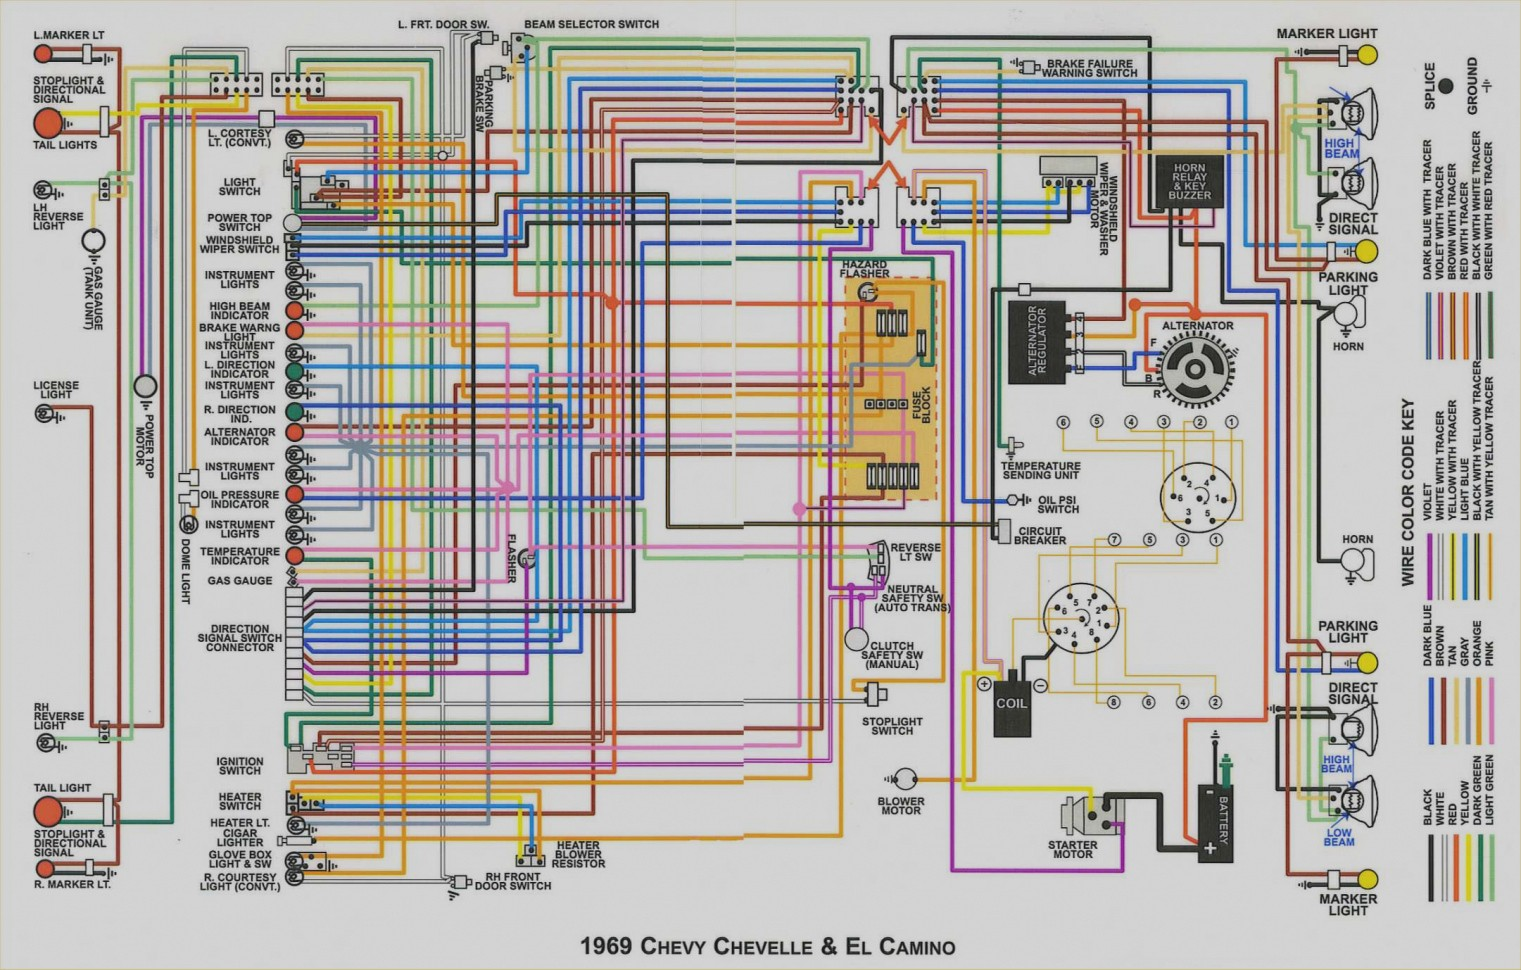 Strange 1969 Ranchero Wiring Diagram New Model Wiring Diagram Wiring Cloud Overrenstrafr09Org